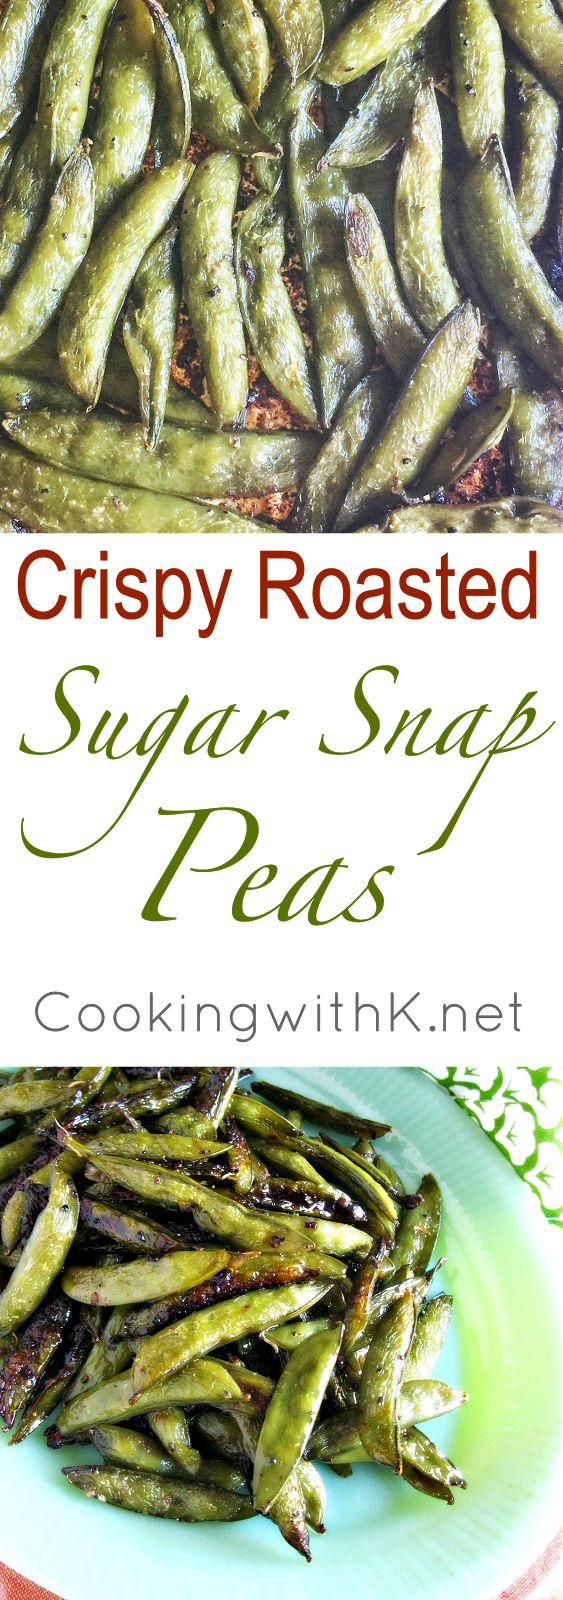 Crispy Roasted Sugar Snap Peas, fresh, healthy, delicious and quick to make. These peas are not shelled but roasted whole in the pod until tender and crispy.